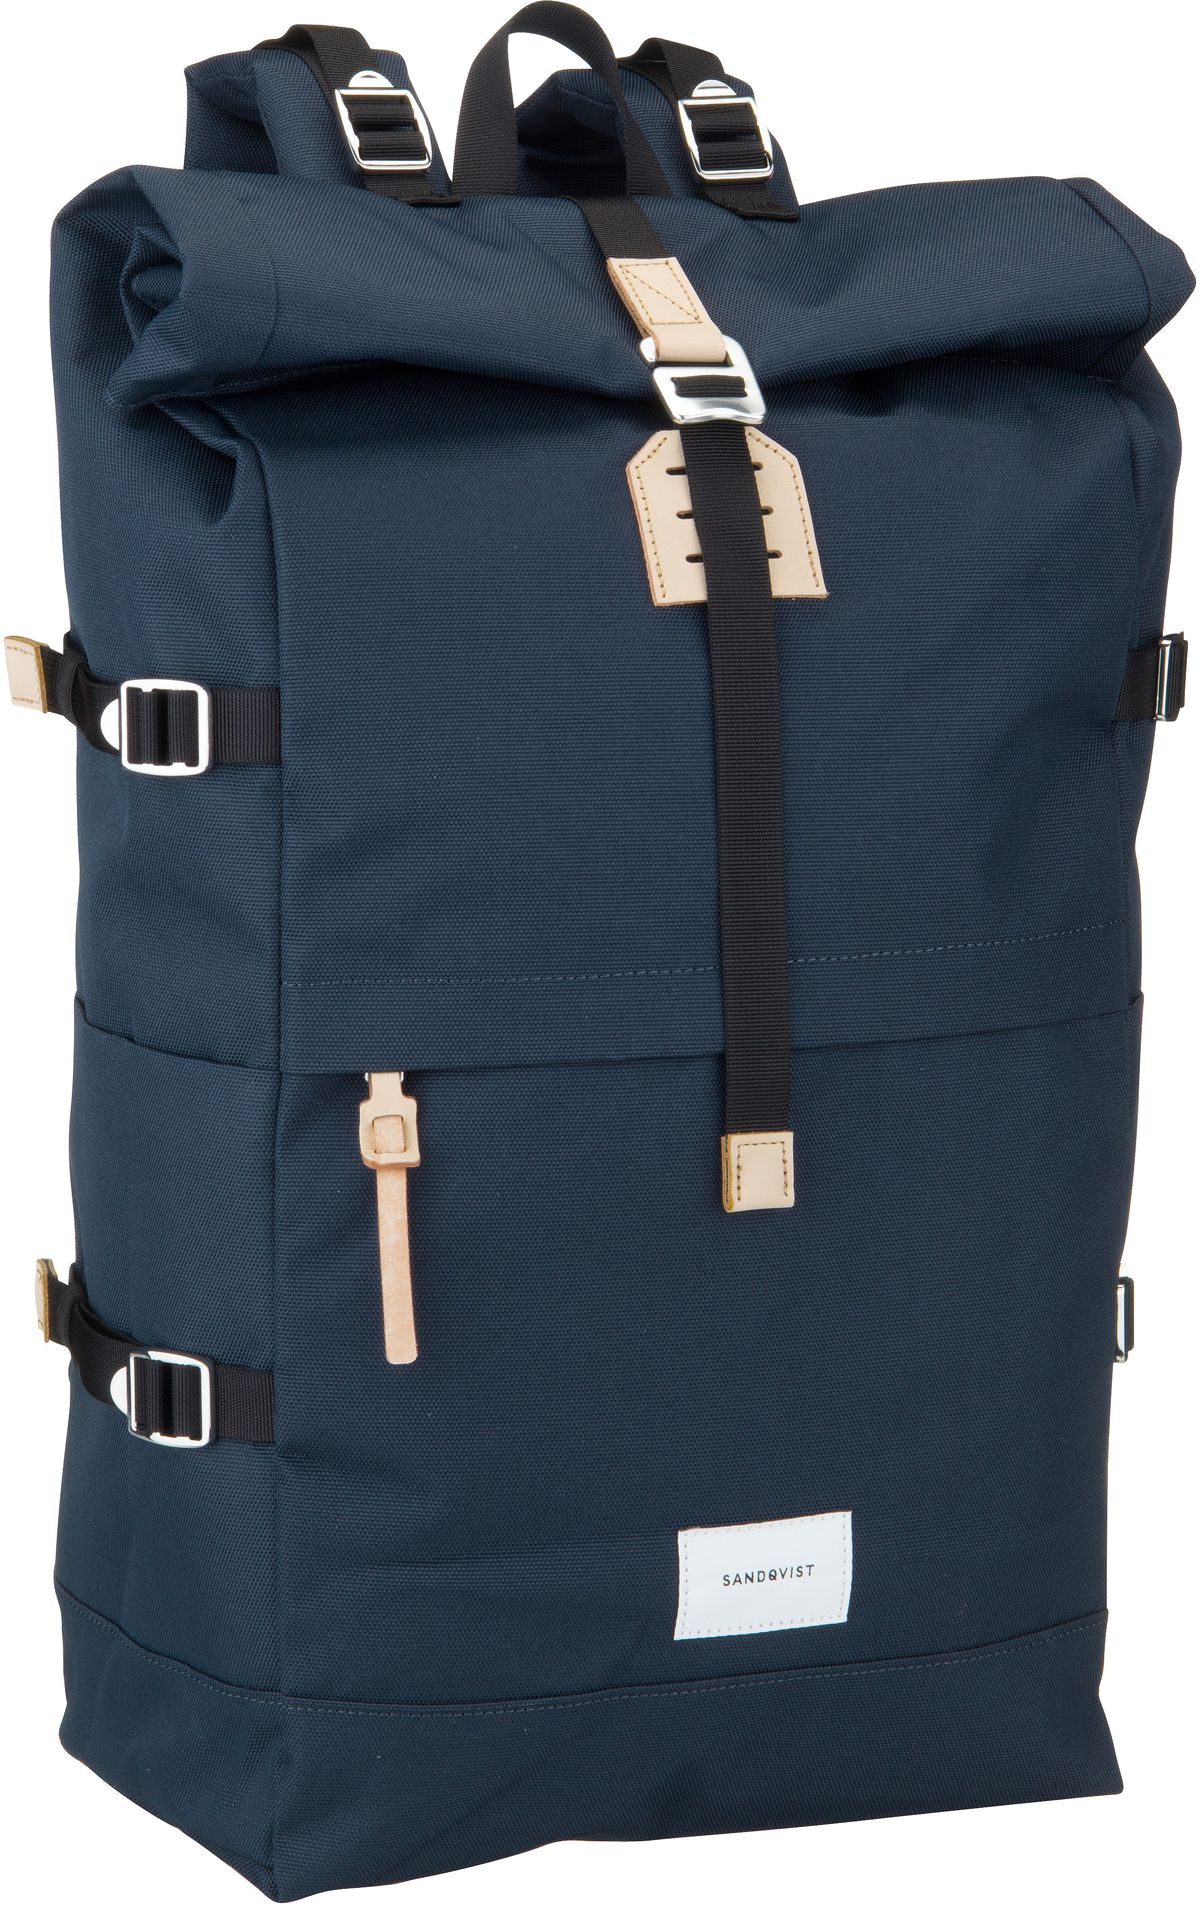 Laptoprucksack Bernt Rolltop Backpack Navy (20 Liter)